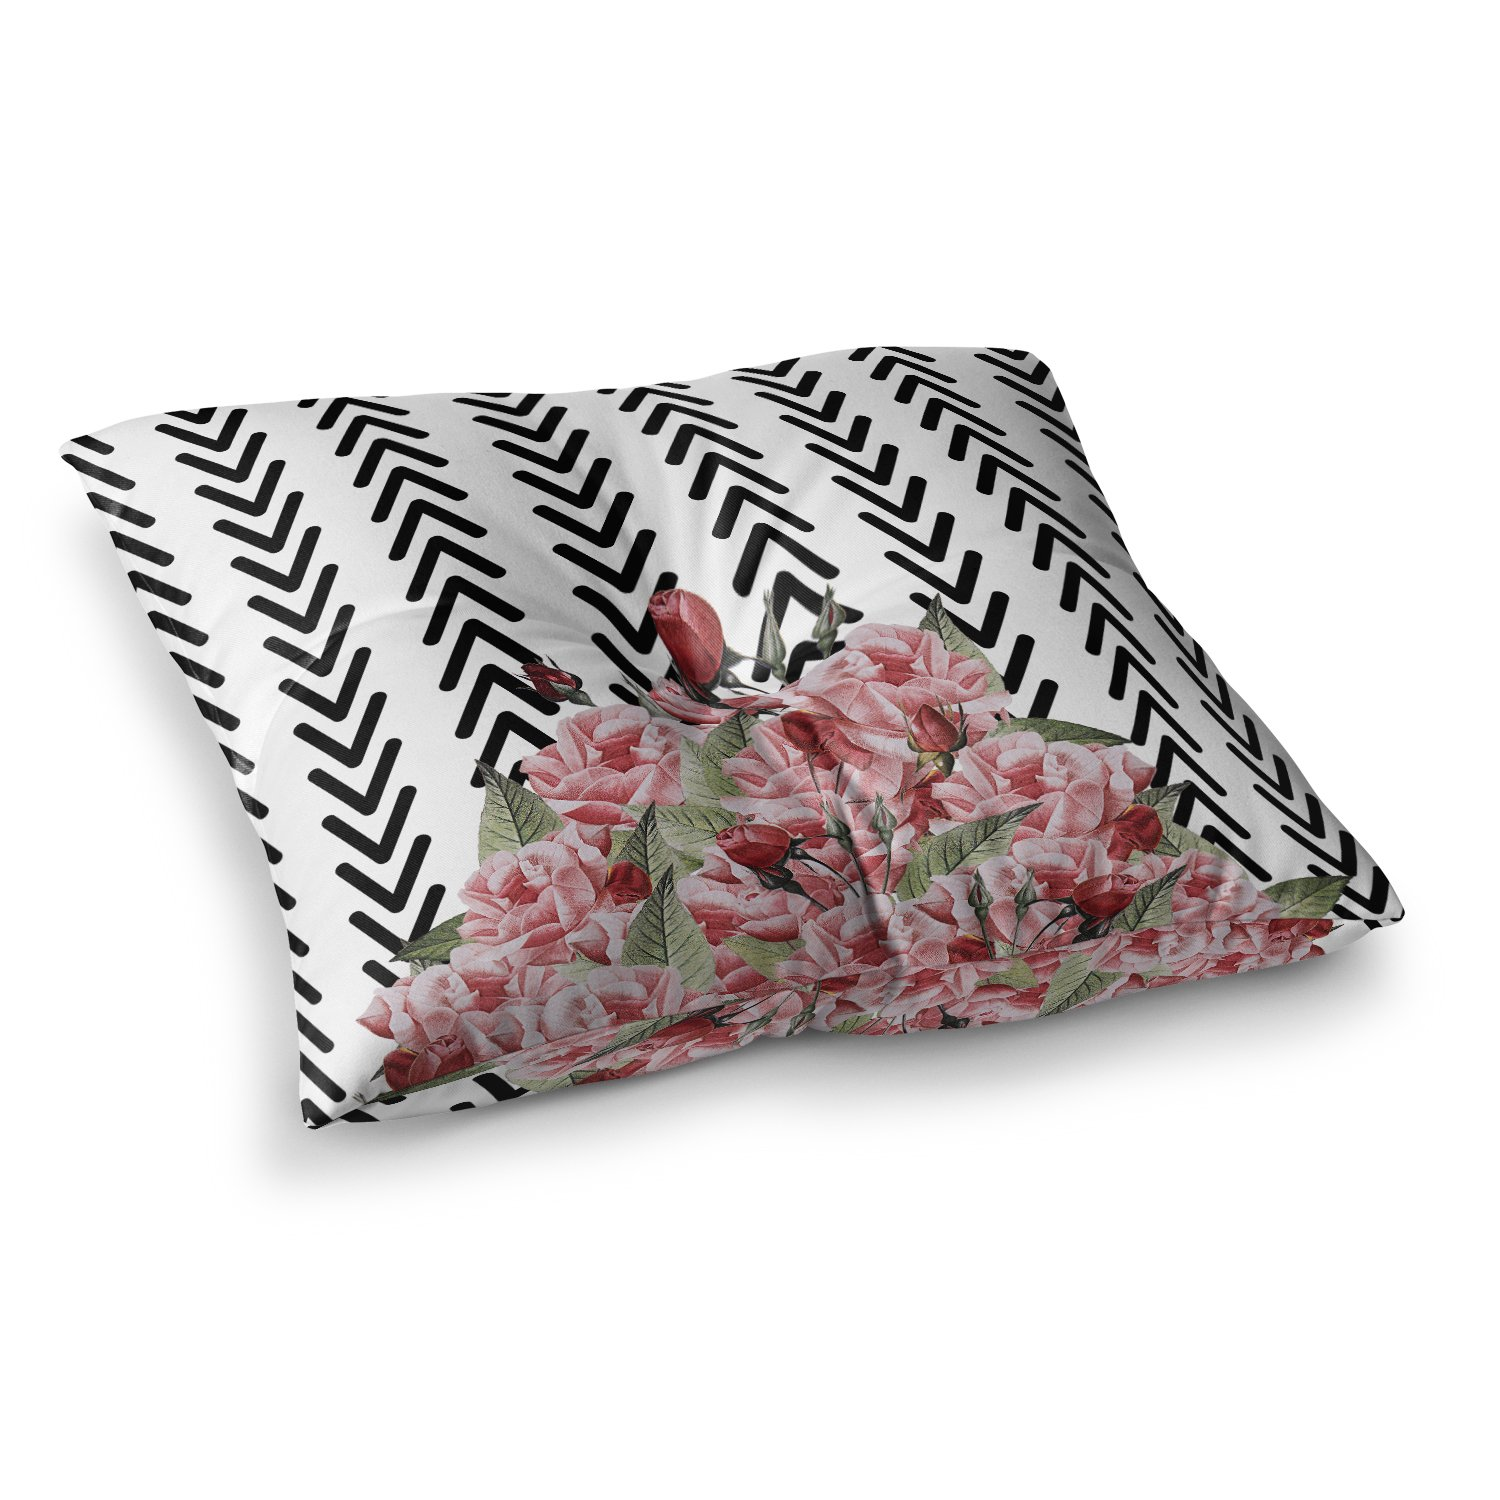 23 x 23 Square Floor Pillow Kess InHouse Tobe Fonseca Spring Pattern Arrow Pink Multicolor Illustration